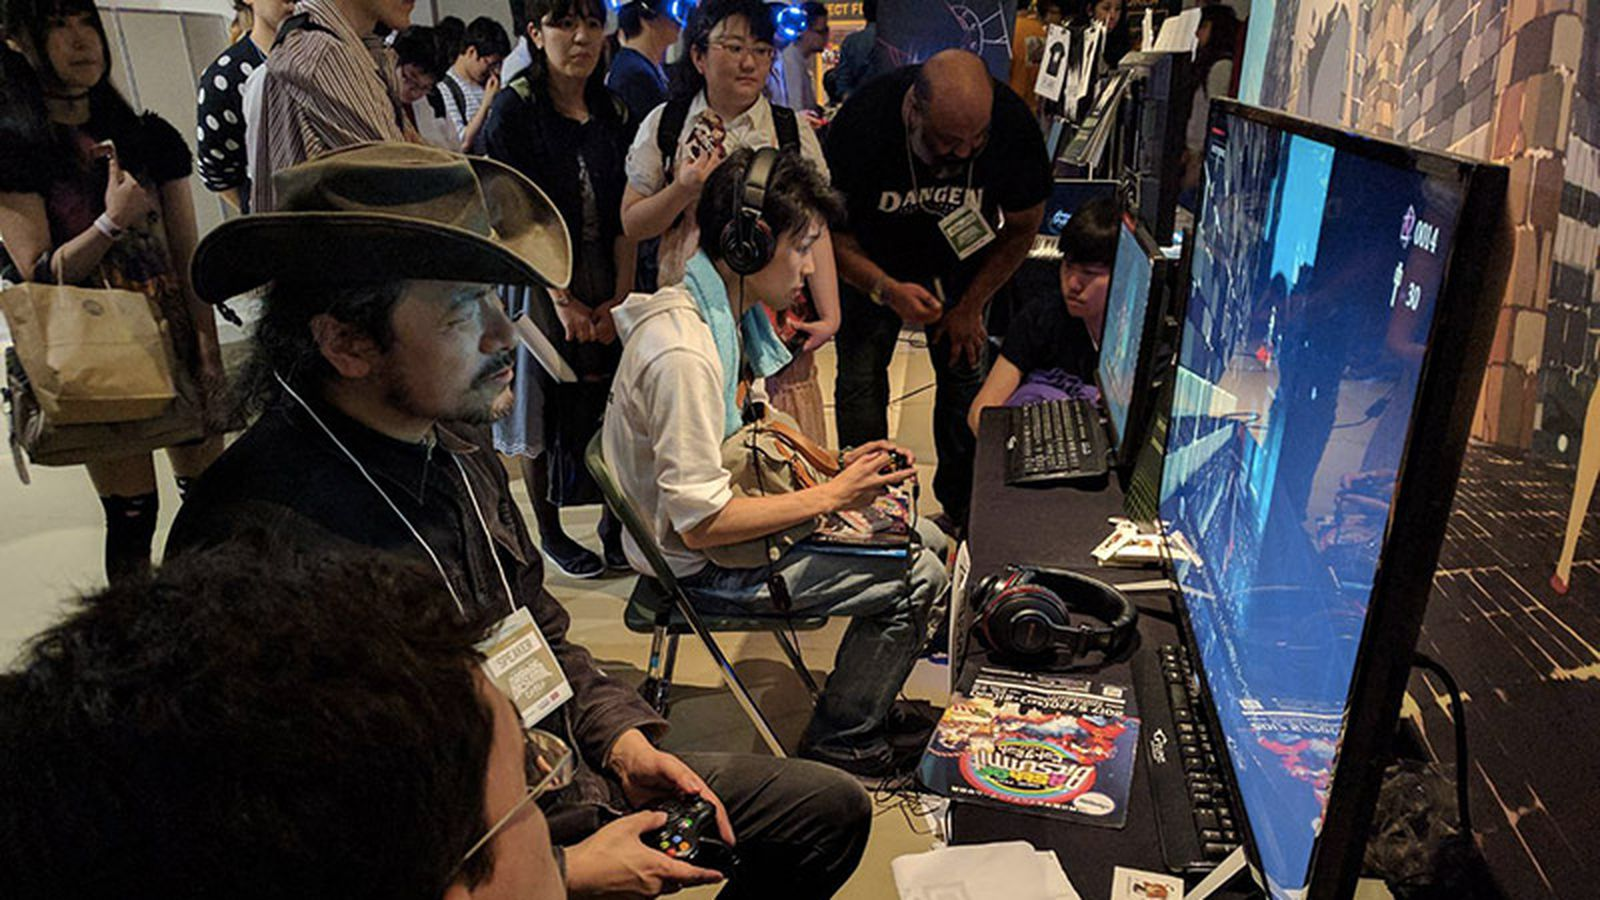 At BitSummit, Castlevania creator gets hands-on with some of the games he inspired